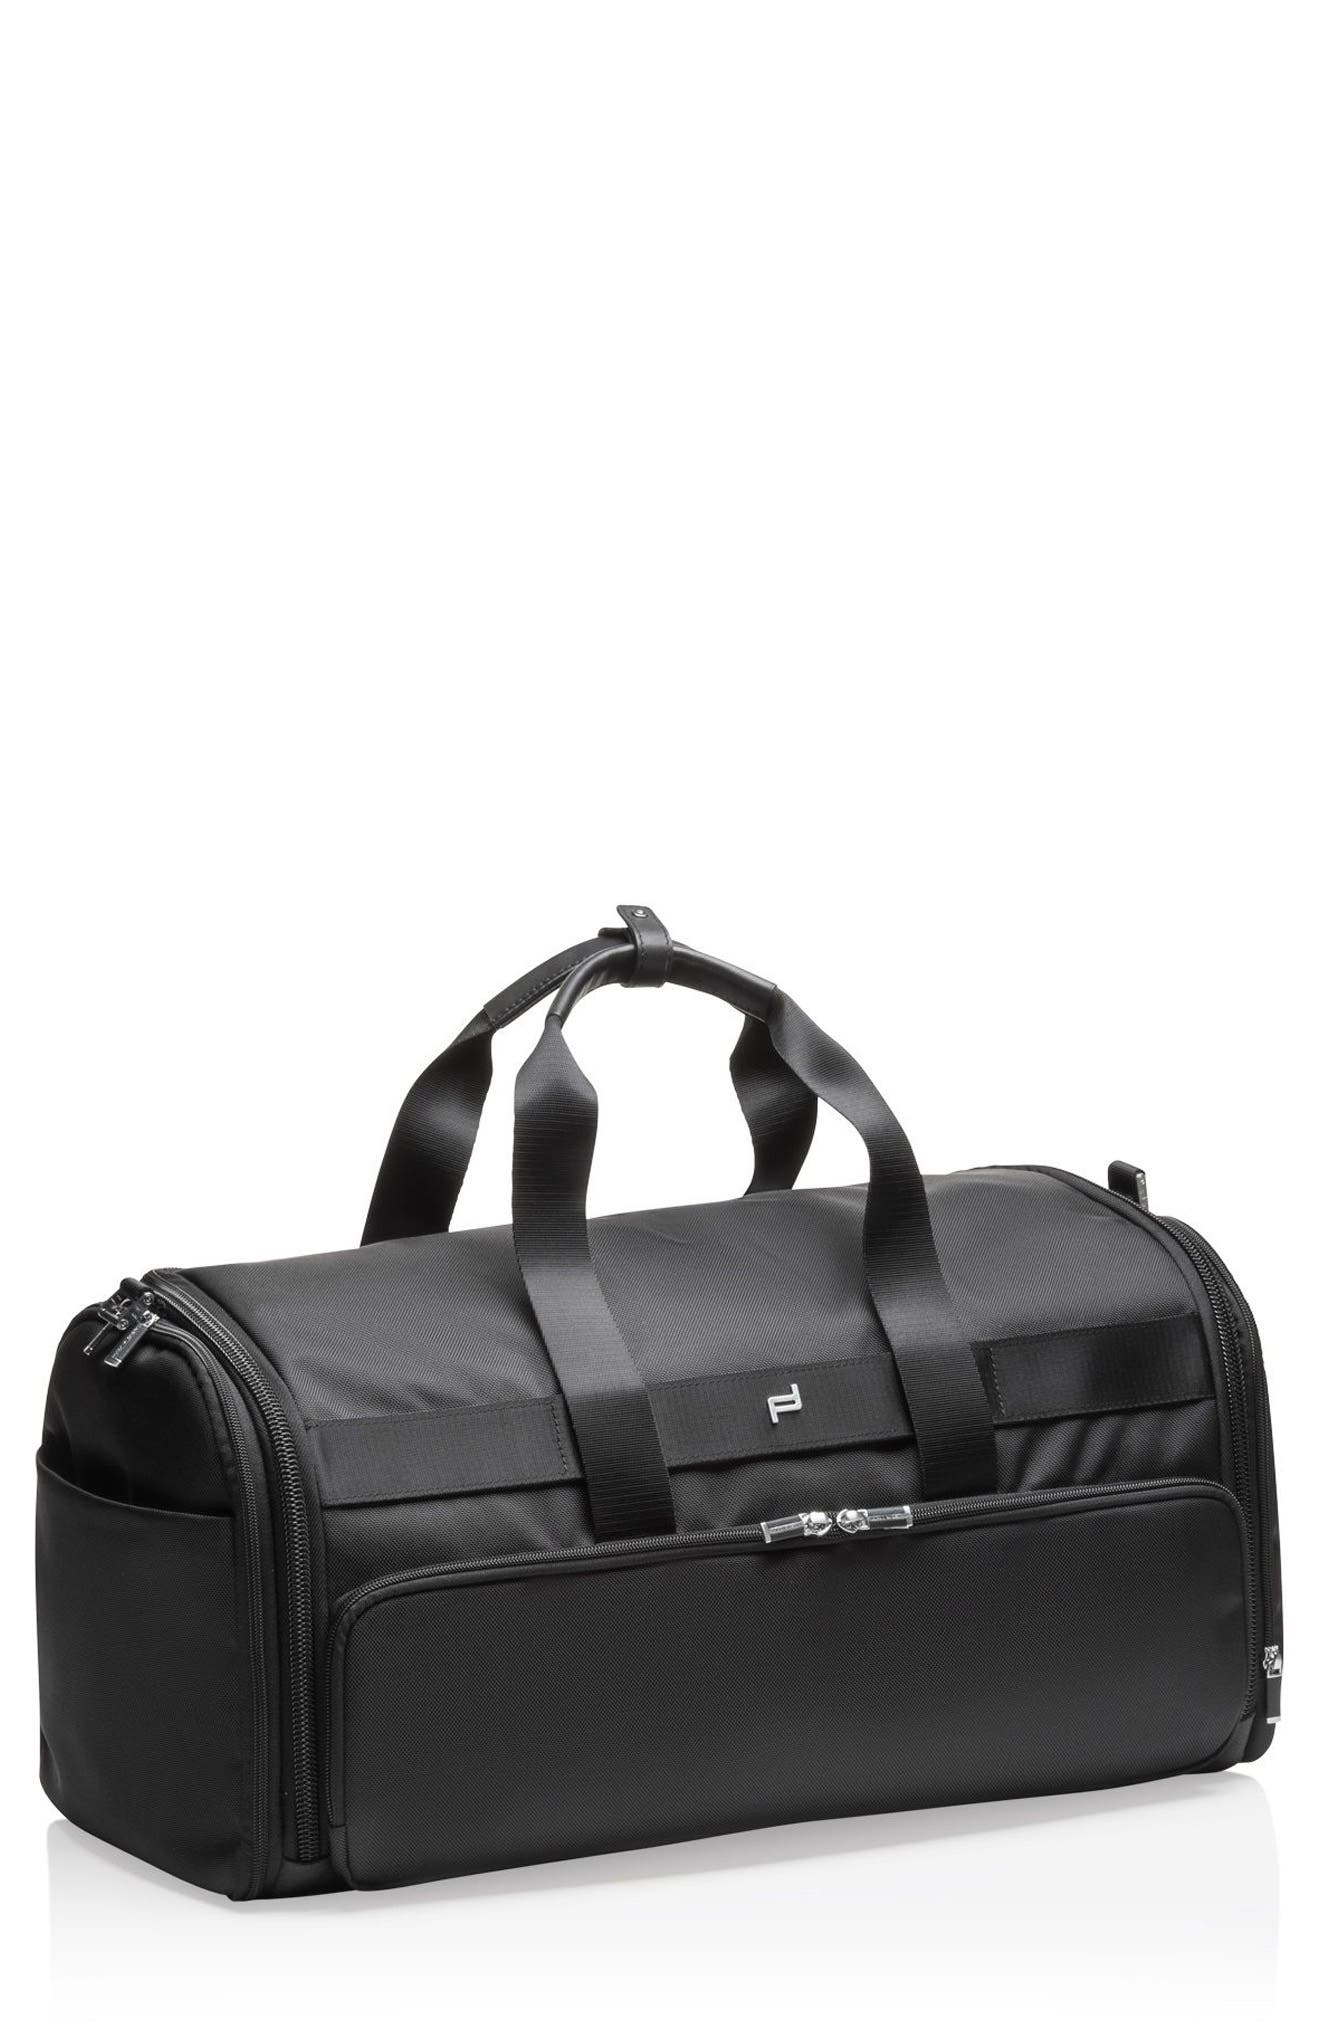 PORSCHE DESIGN Roadster 3.0 Duffel Bag